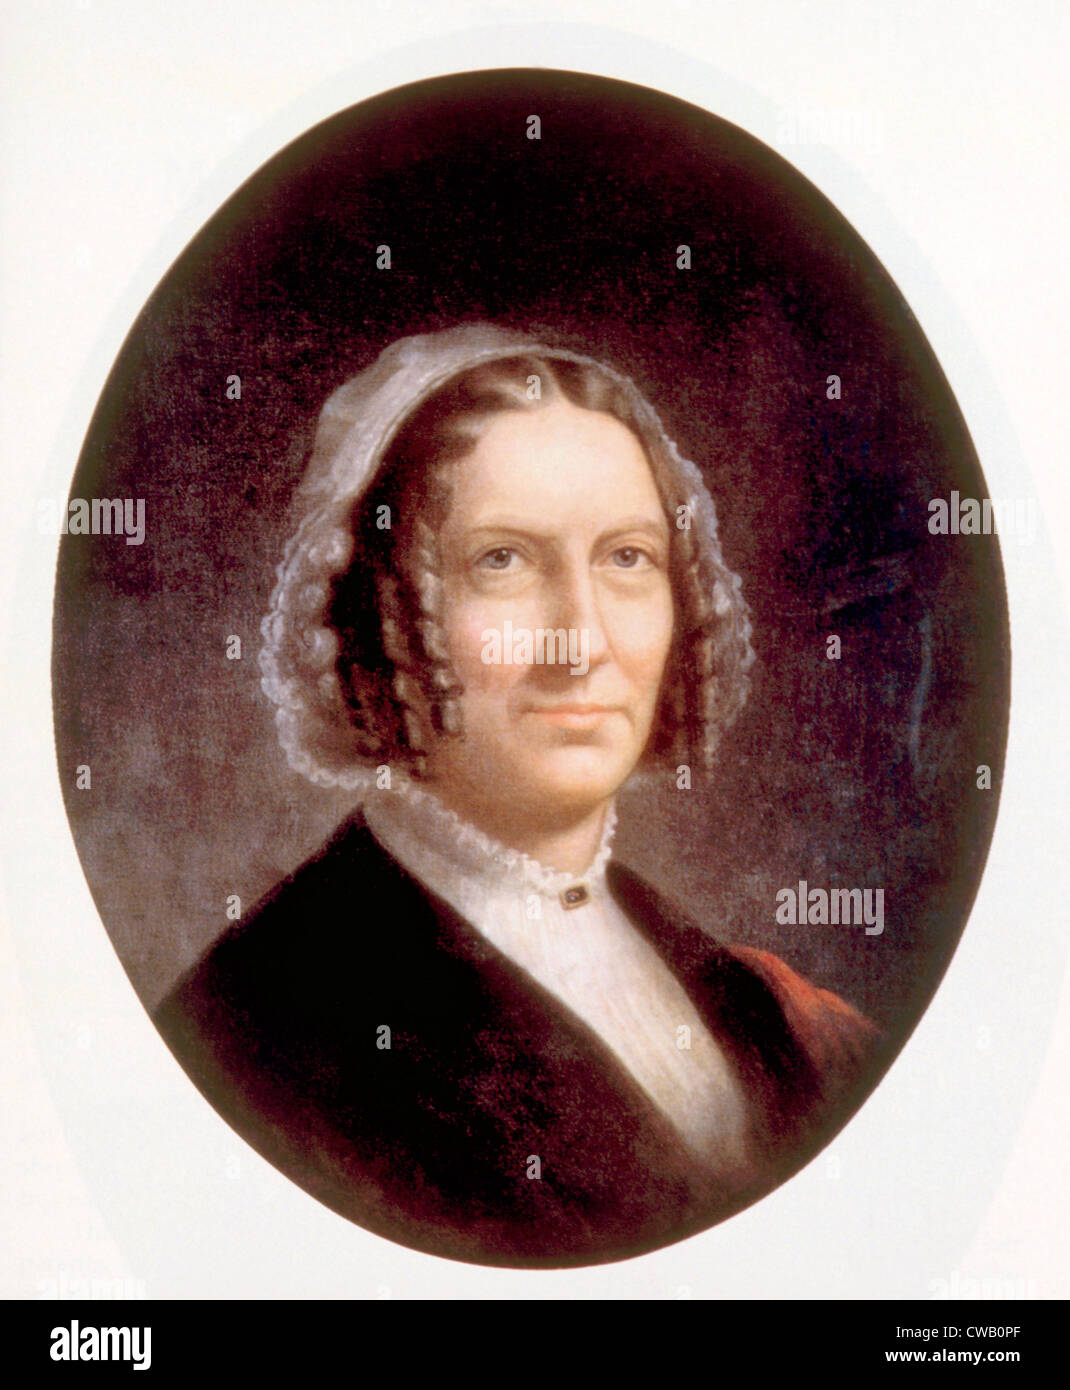 Abigail Fillmore (1798-1853), First Lady (1850-1853) - Stock Image